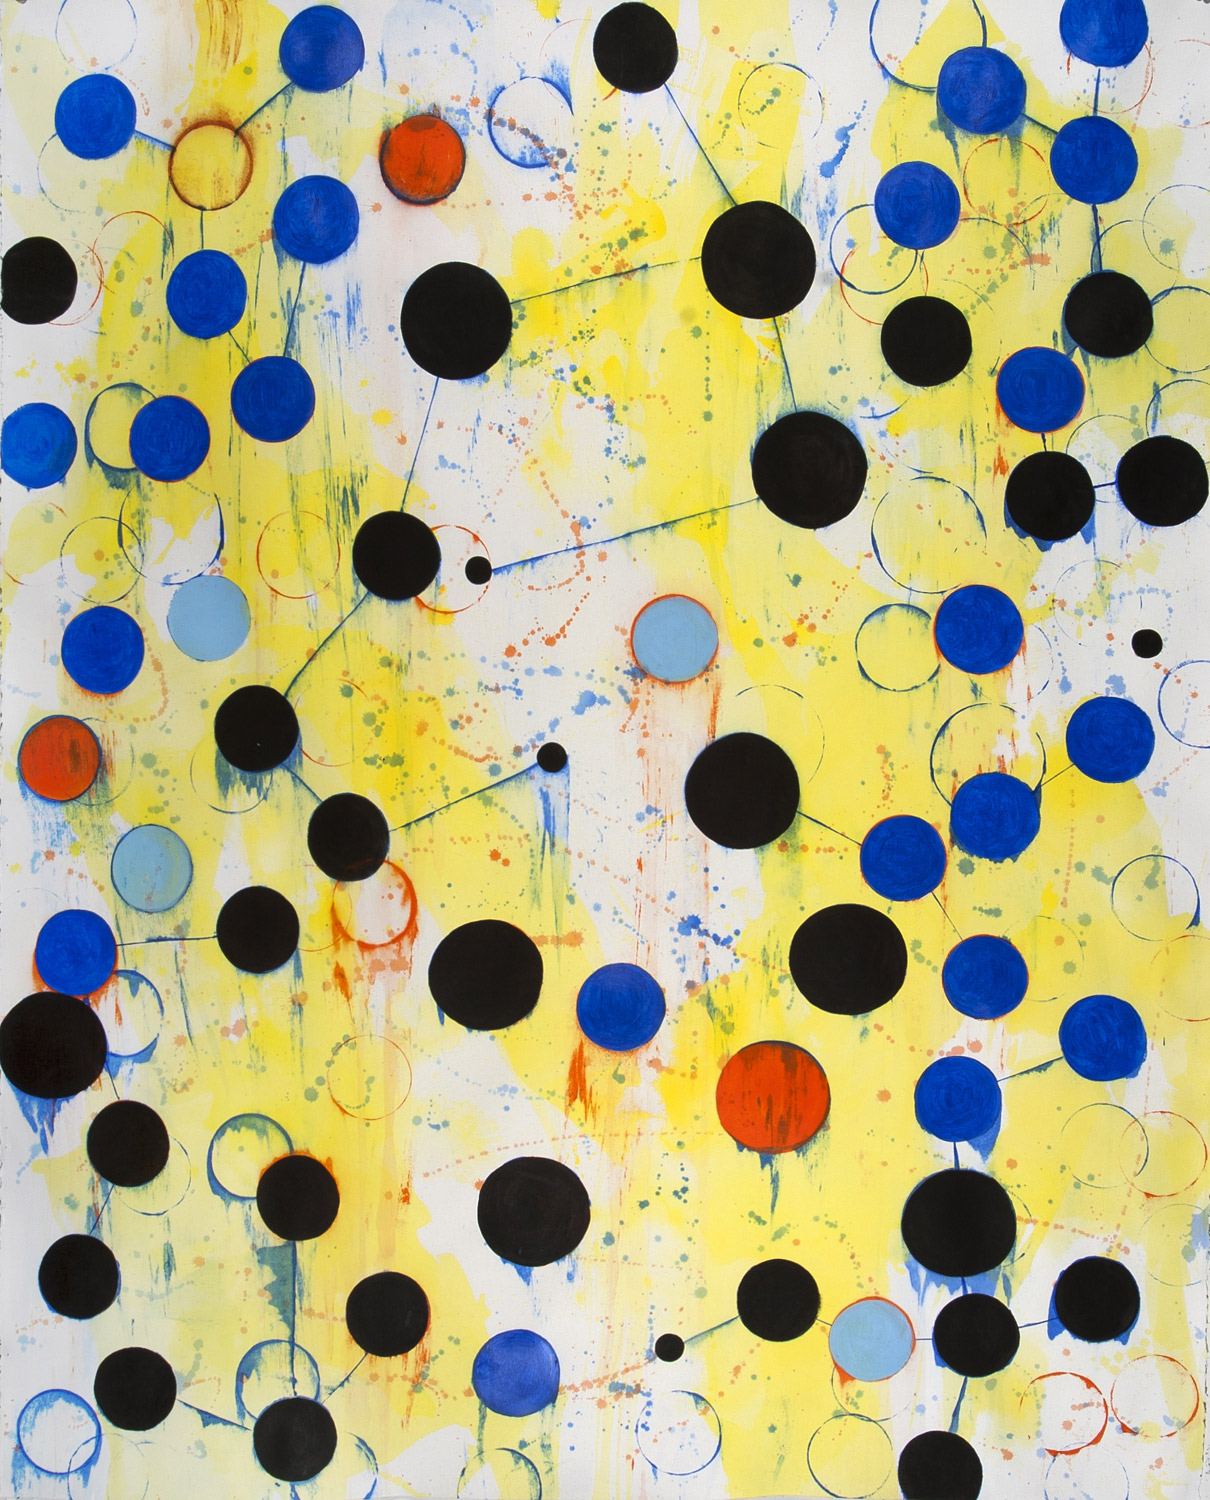 Joan Moment - <b>Dot Connection</b>, 2012, acrylic on arches paper, 42 ¼ x  52